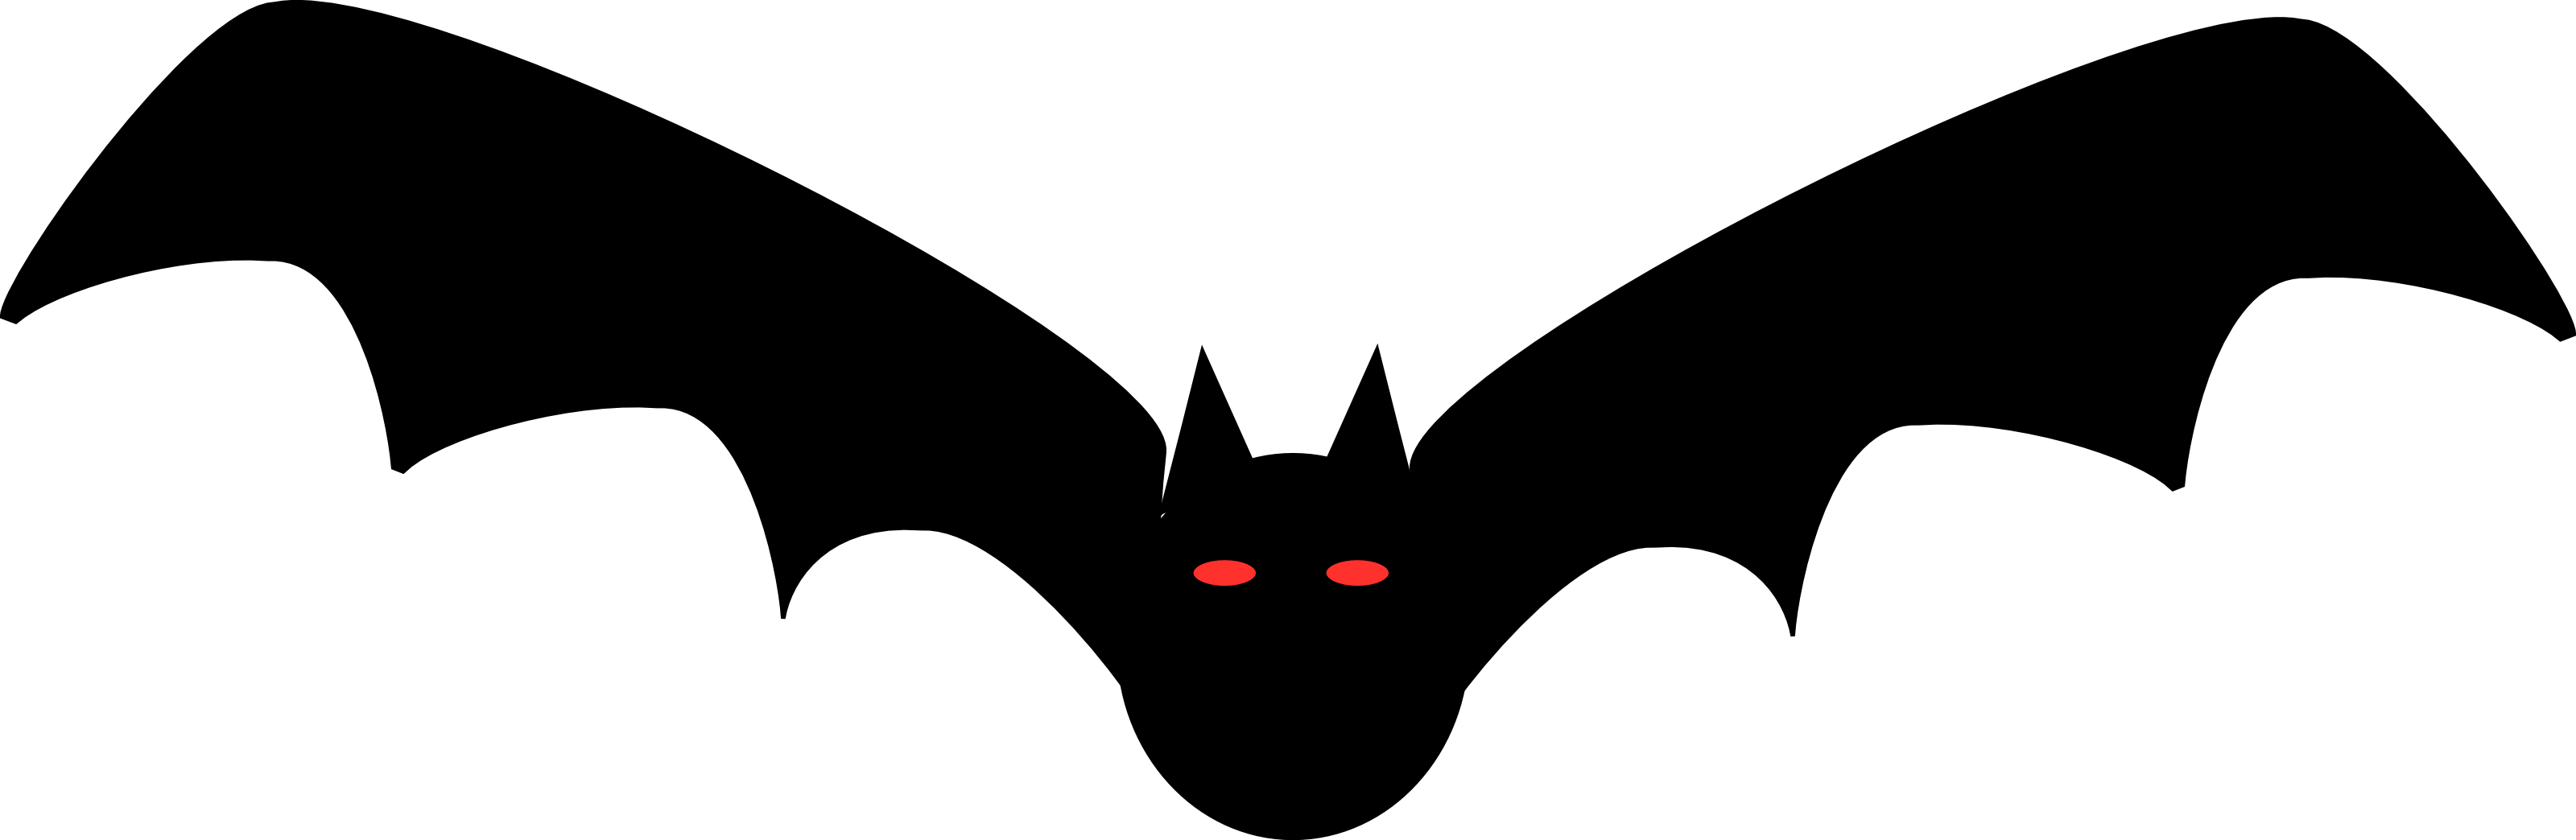 Image - 111-Free-Halloween-Clipart-Illustration-Of-Black-Bat-With ...